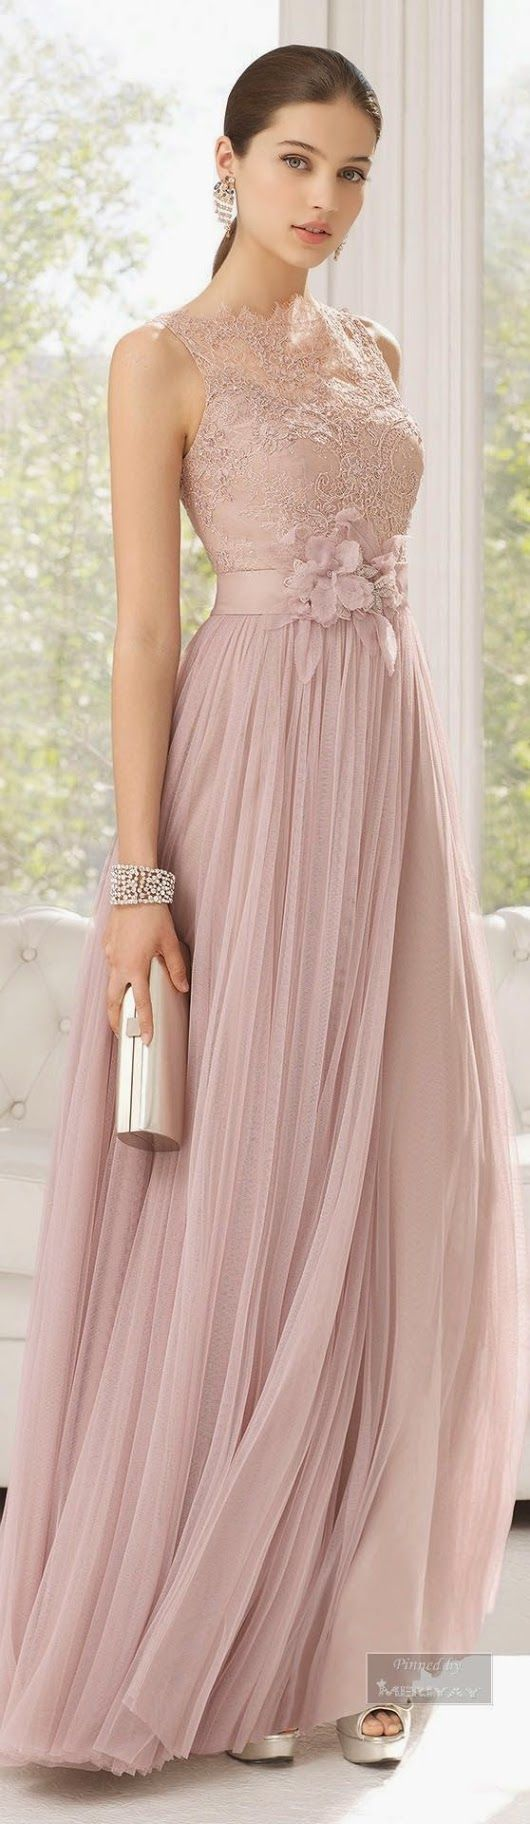 Pin de Sam Narburgh en Bridesmaid | Pinterest | Vestiditos, Vestidos ...